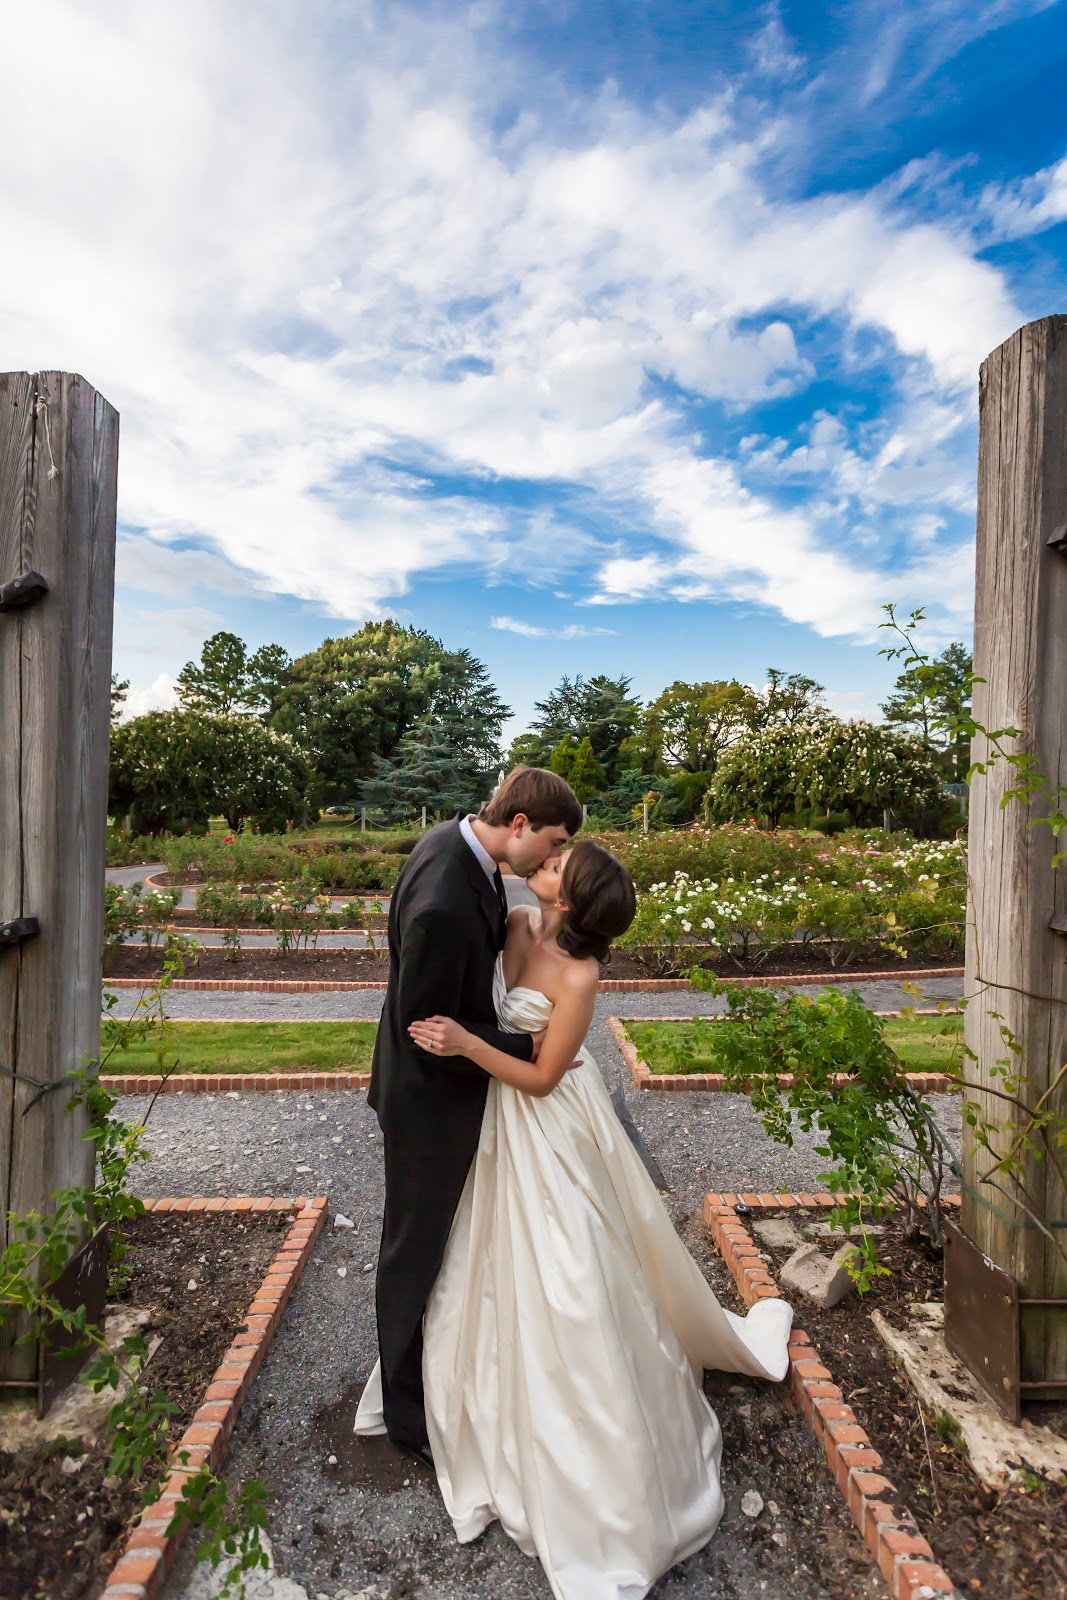 Wedding Photography Memphis: Message In A Bottle Productions: ROB LYONS PHOTOGRAPHY